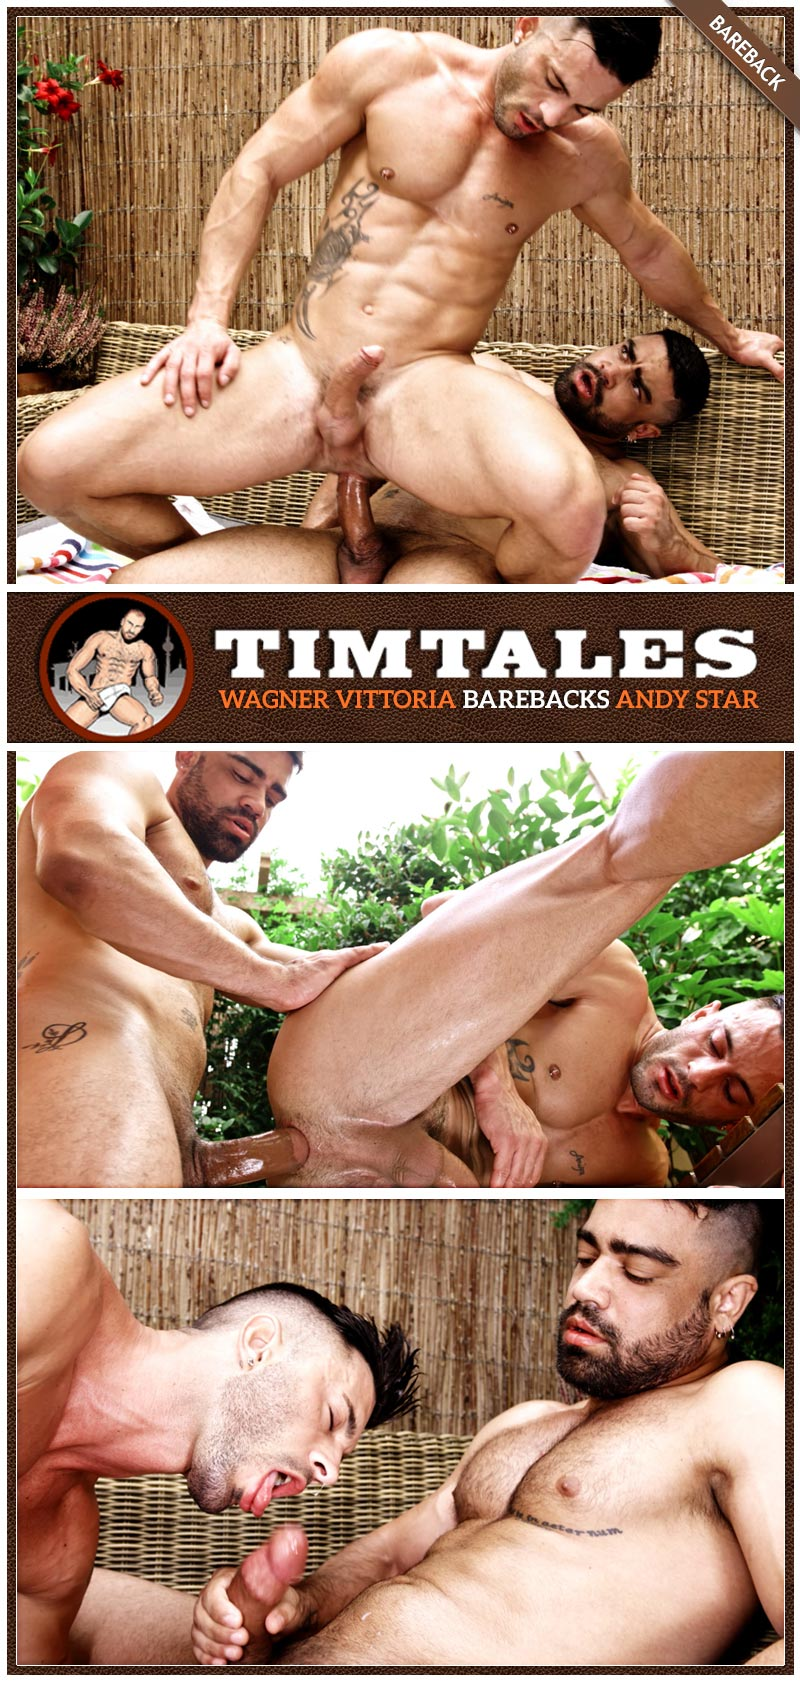 Wagner Vittoria Fucks Andy Star at TimTales